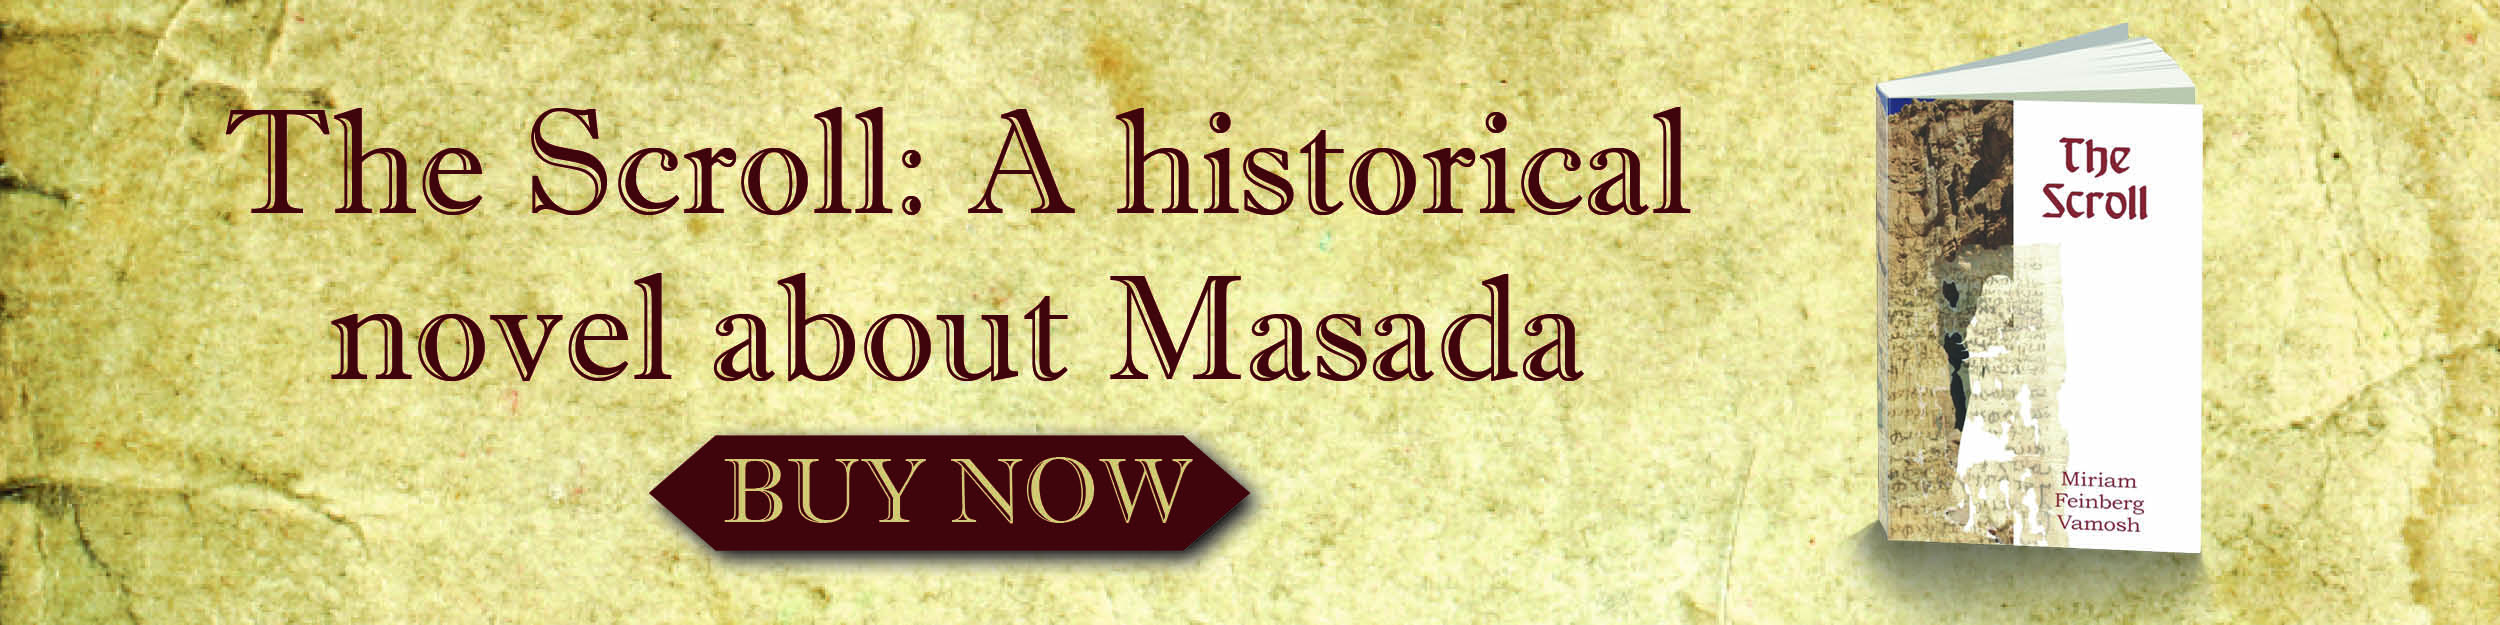 The scroll: a historical novel about masada. Buy now.